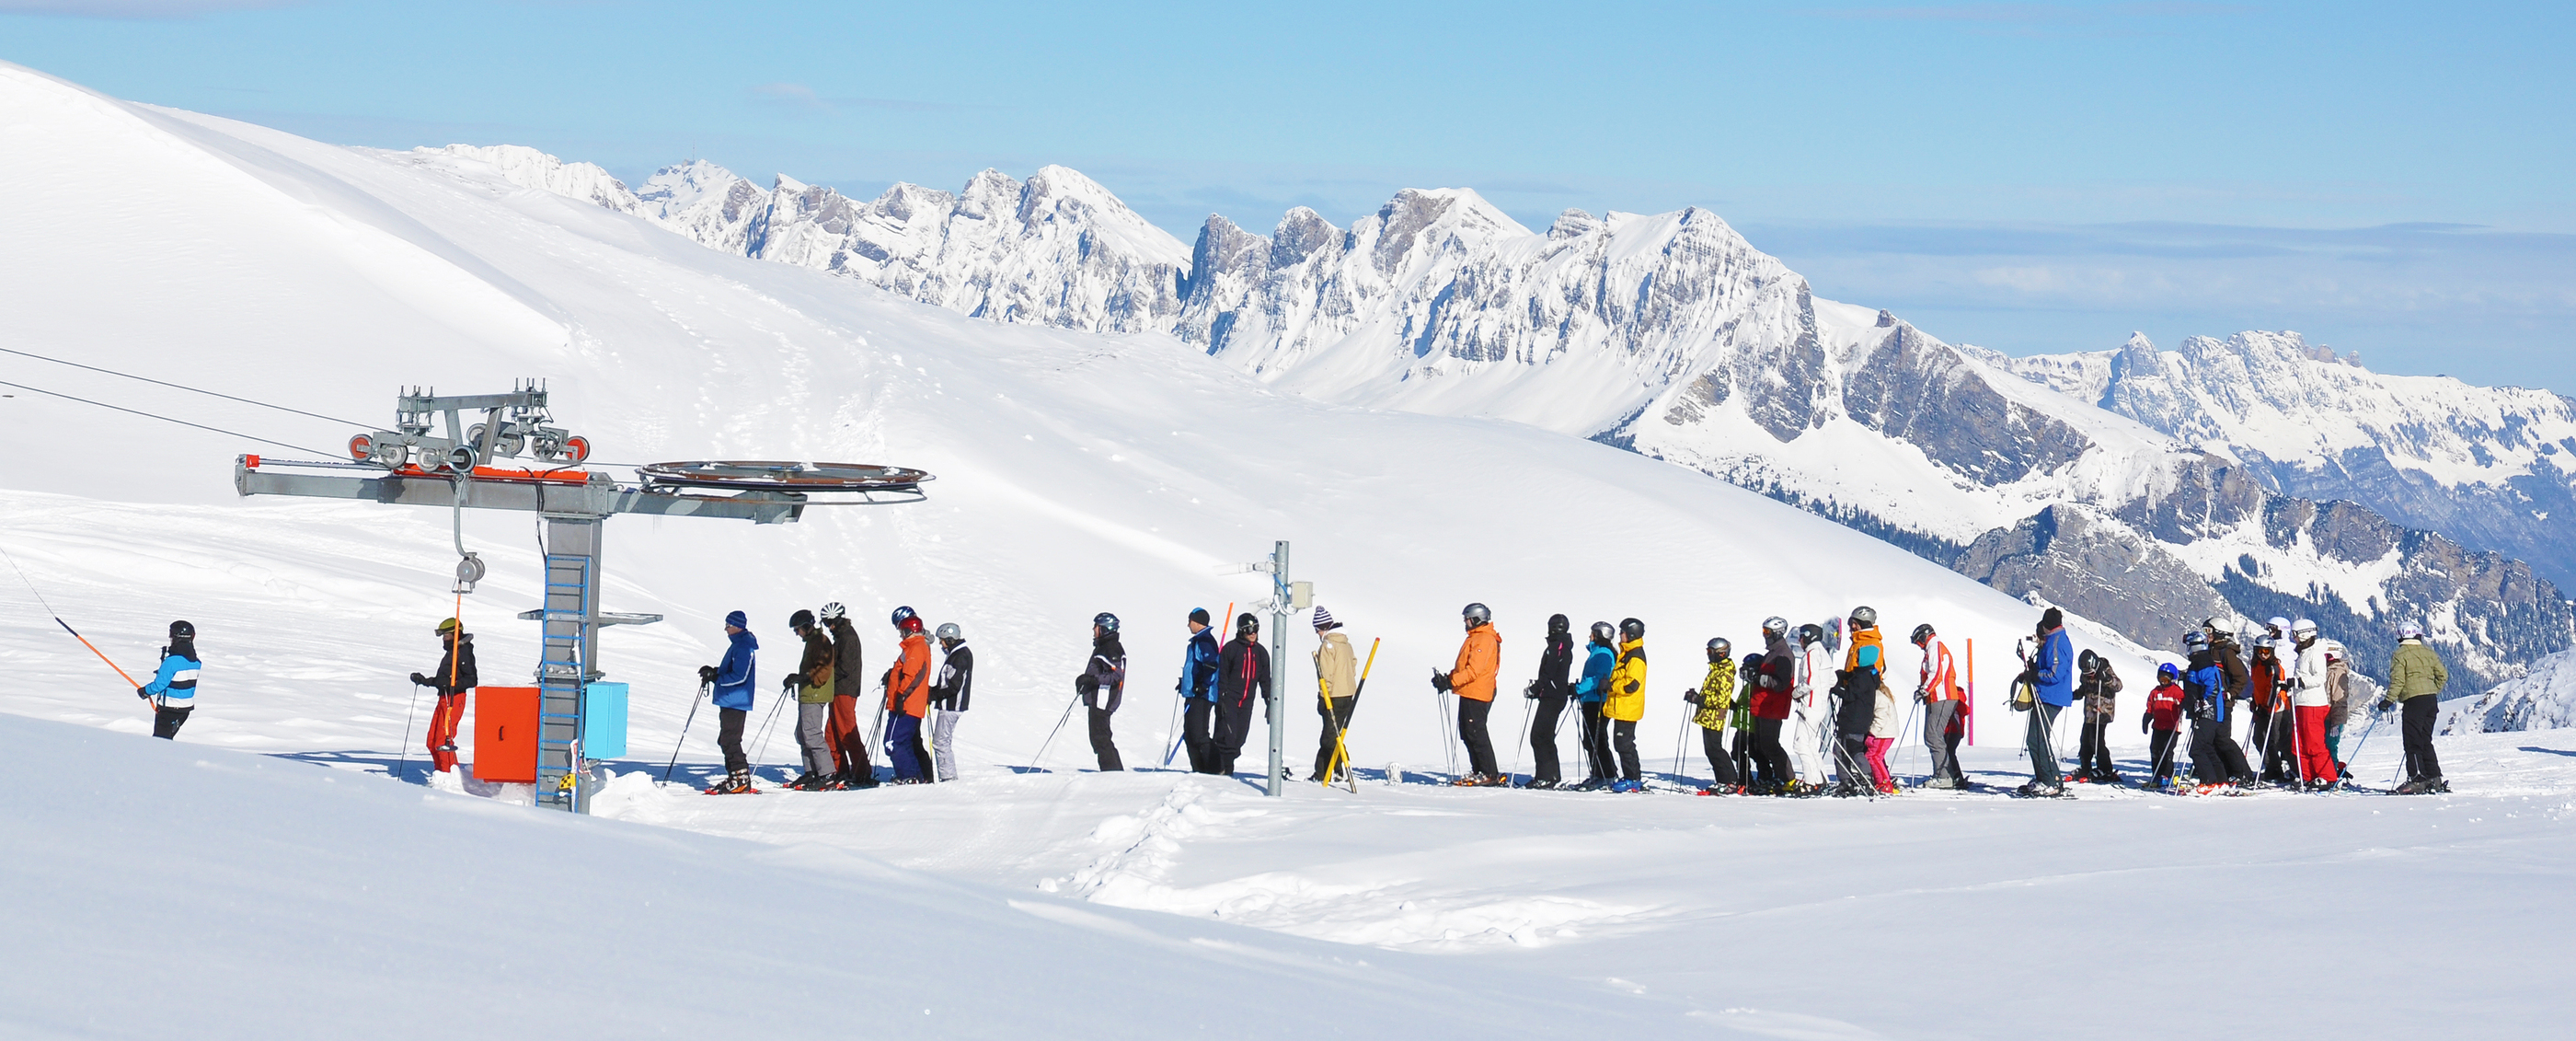 why skiing is better than snowboarding